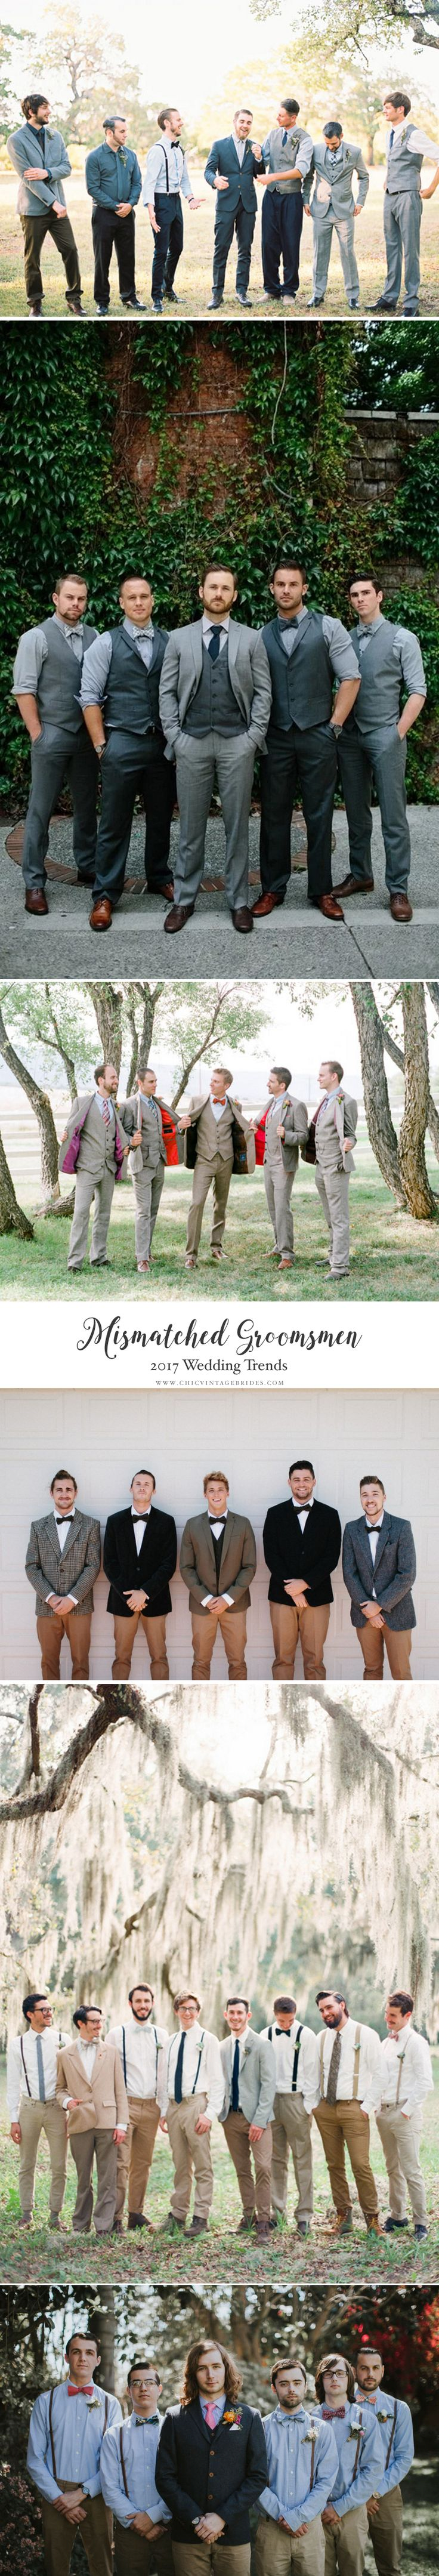 Top Wedding Trends 2017 - Mismatched Groomsmen